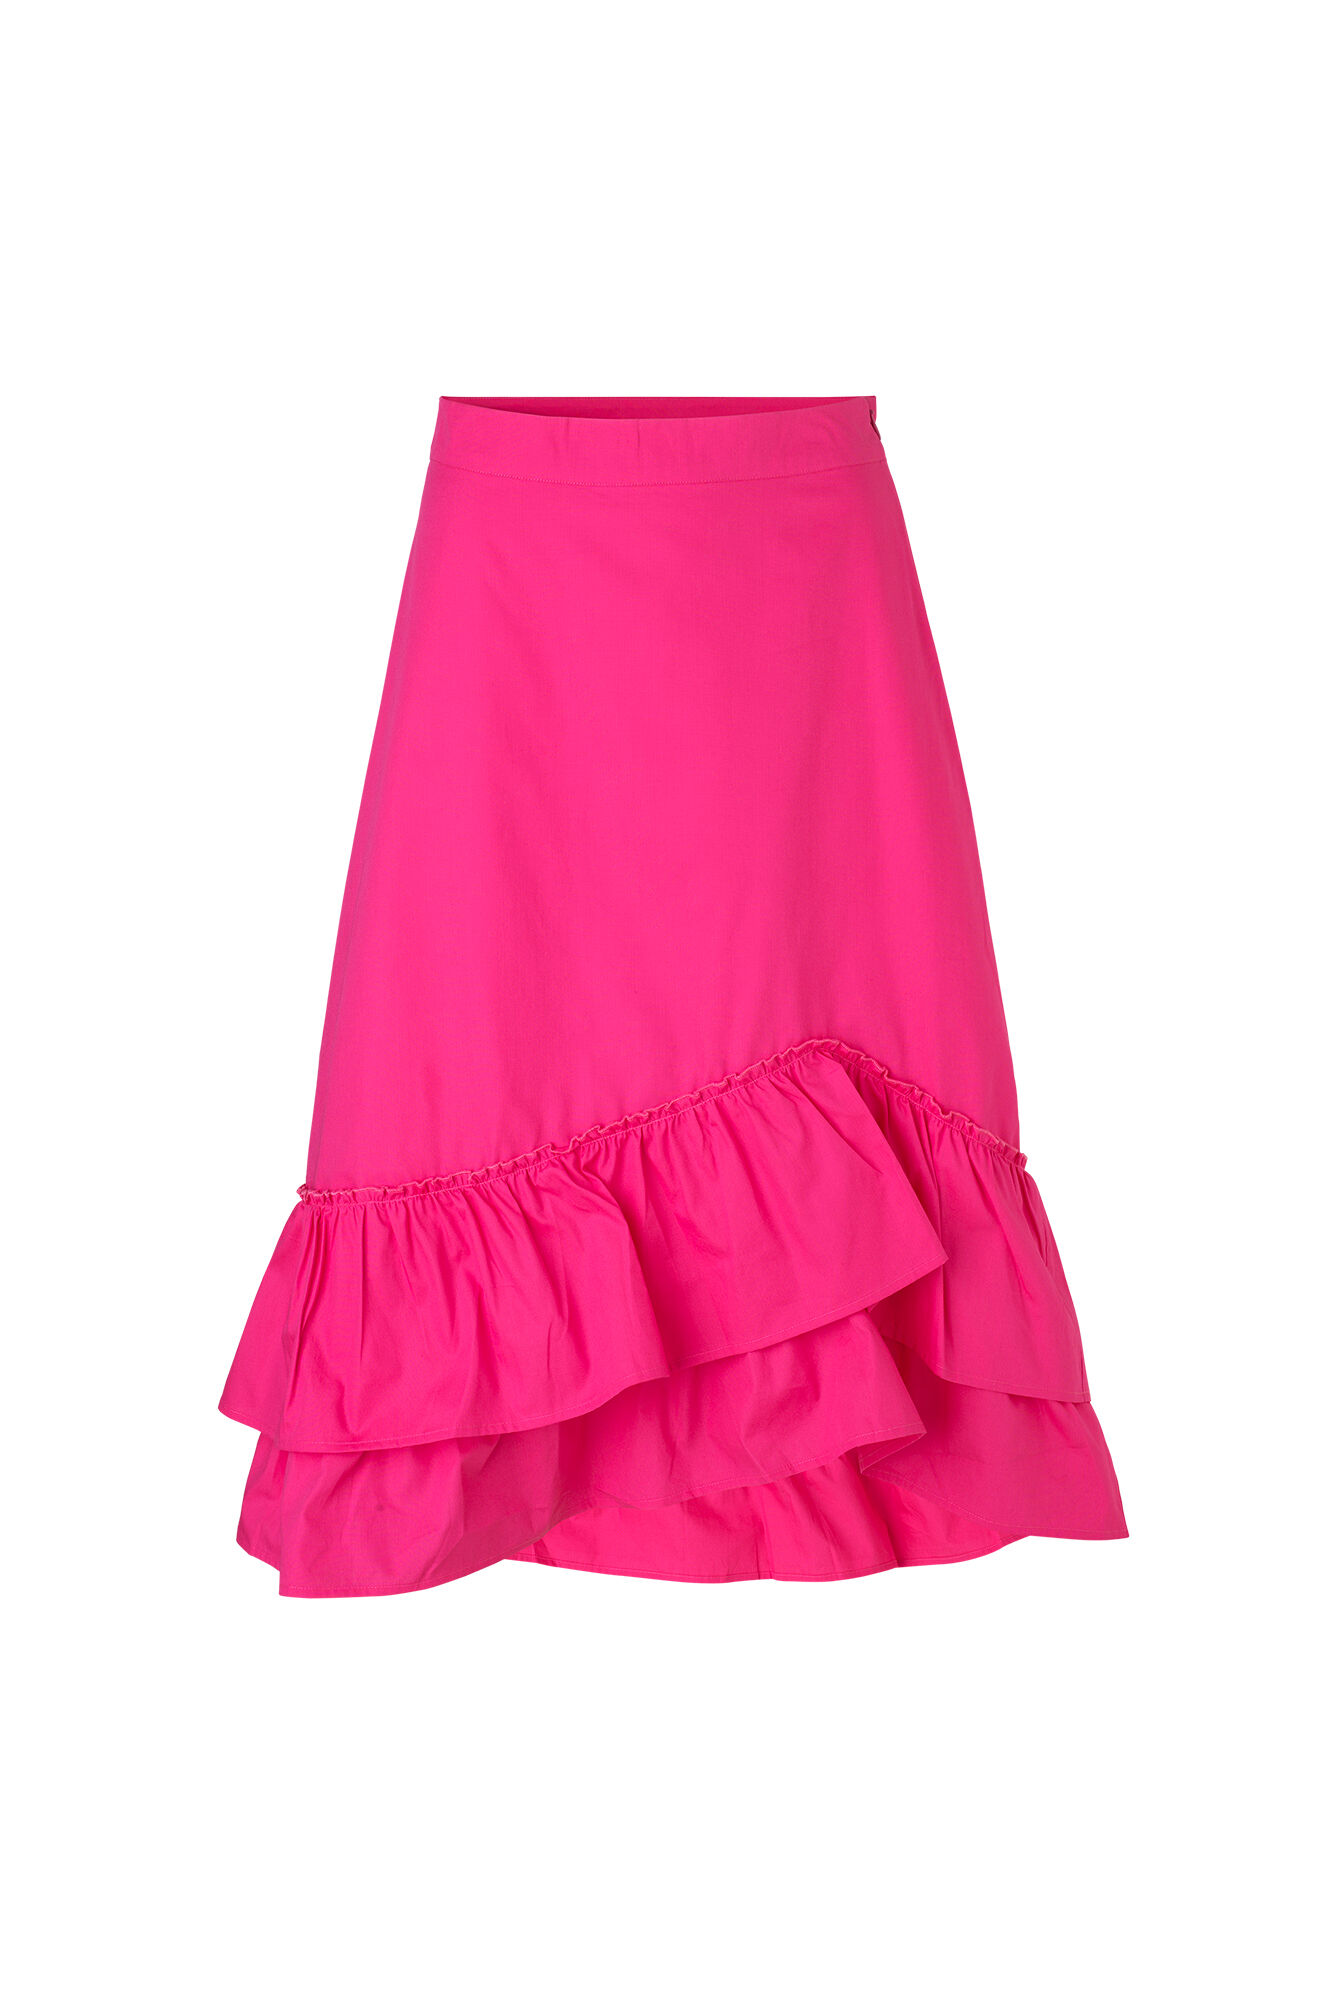 ENPARADISE SKIRT 6459, BEETROOT PURPLE